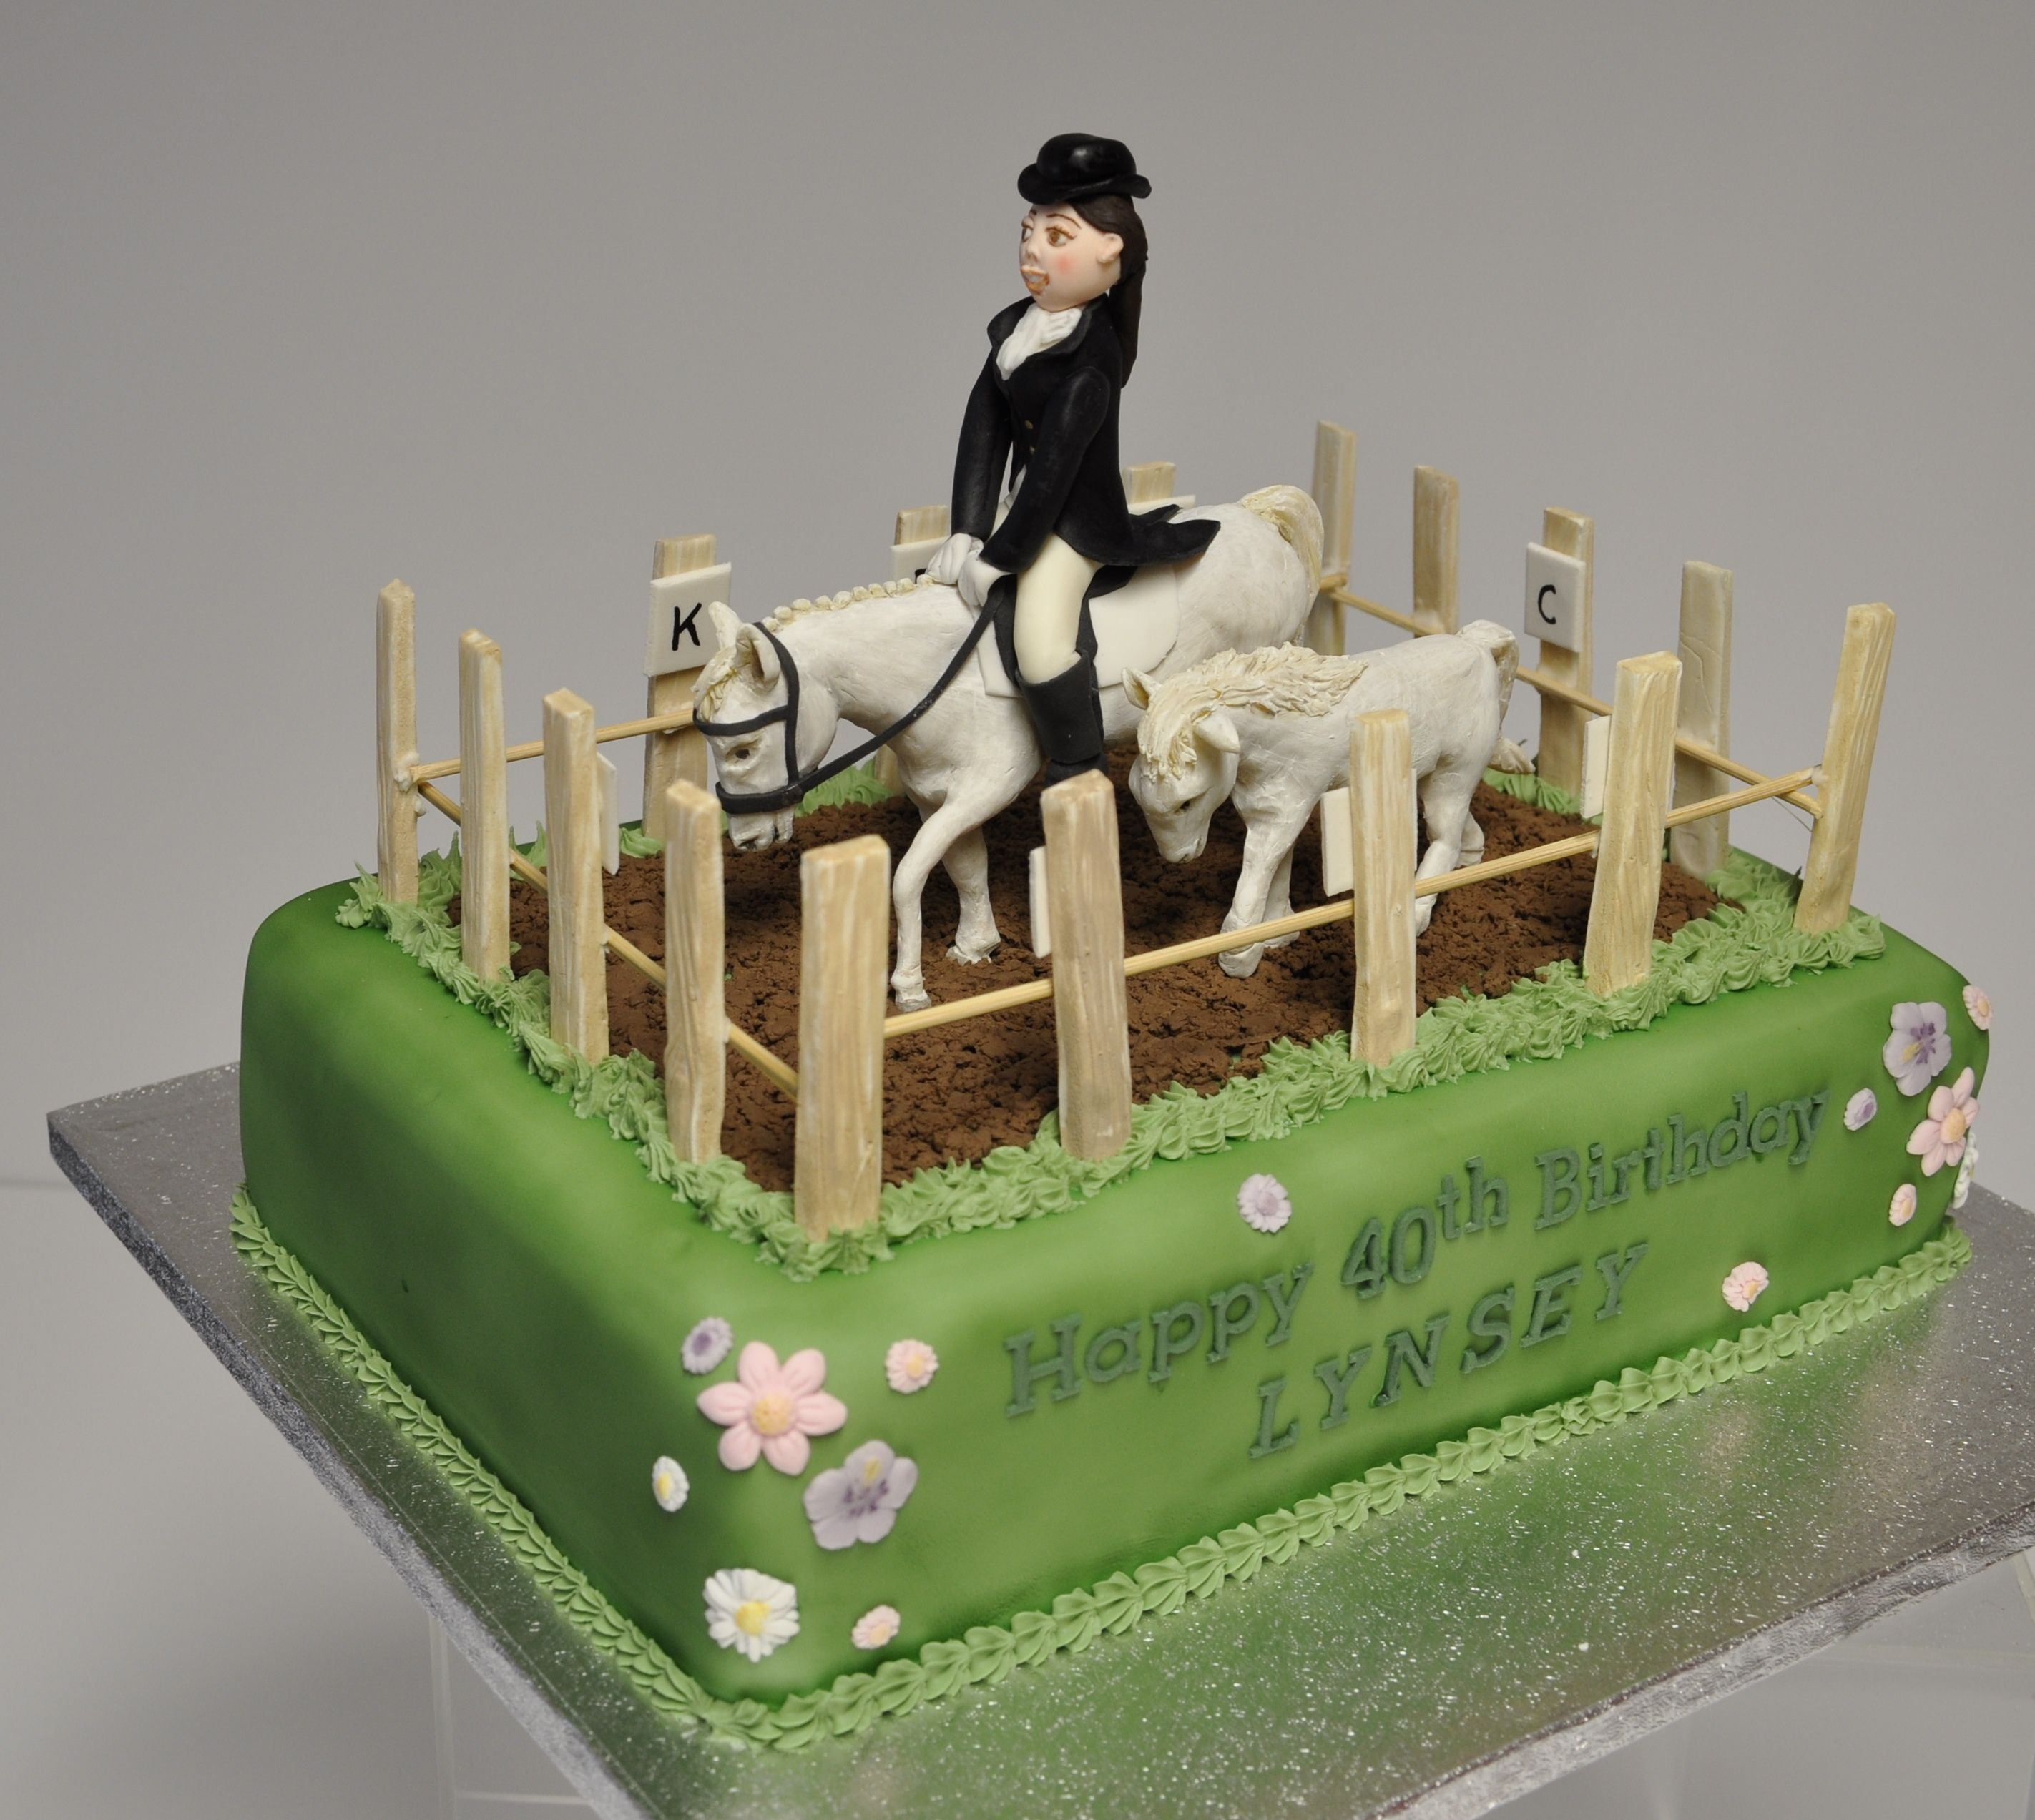 Horse Themed Birthday Cake With Edible Modelling Chocolate Horses - Horse themed birthday cakes